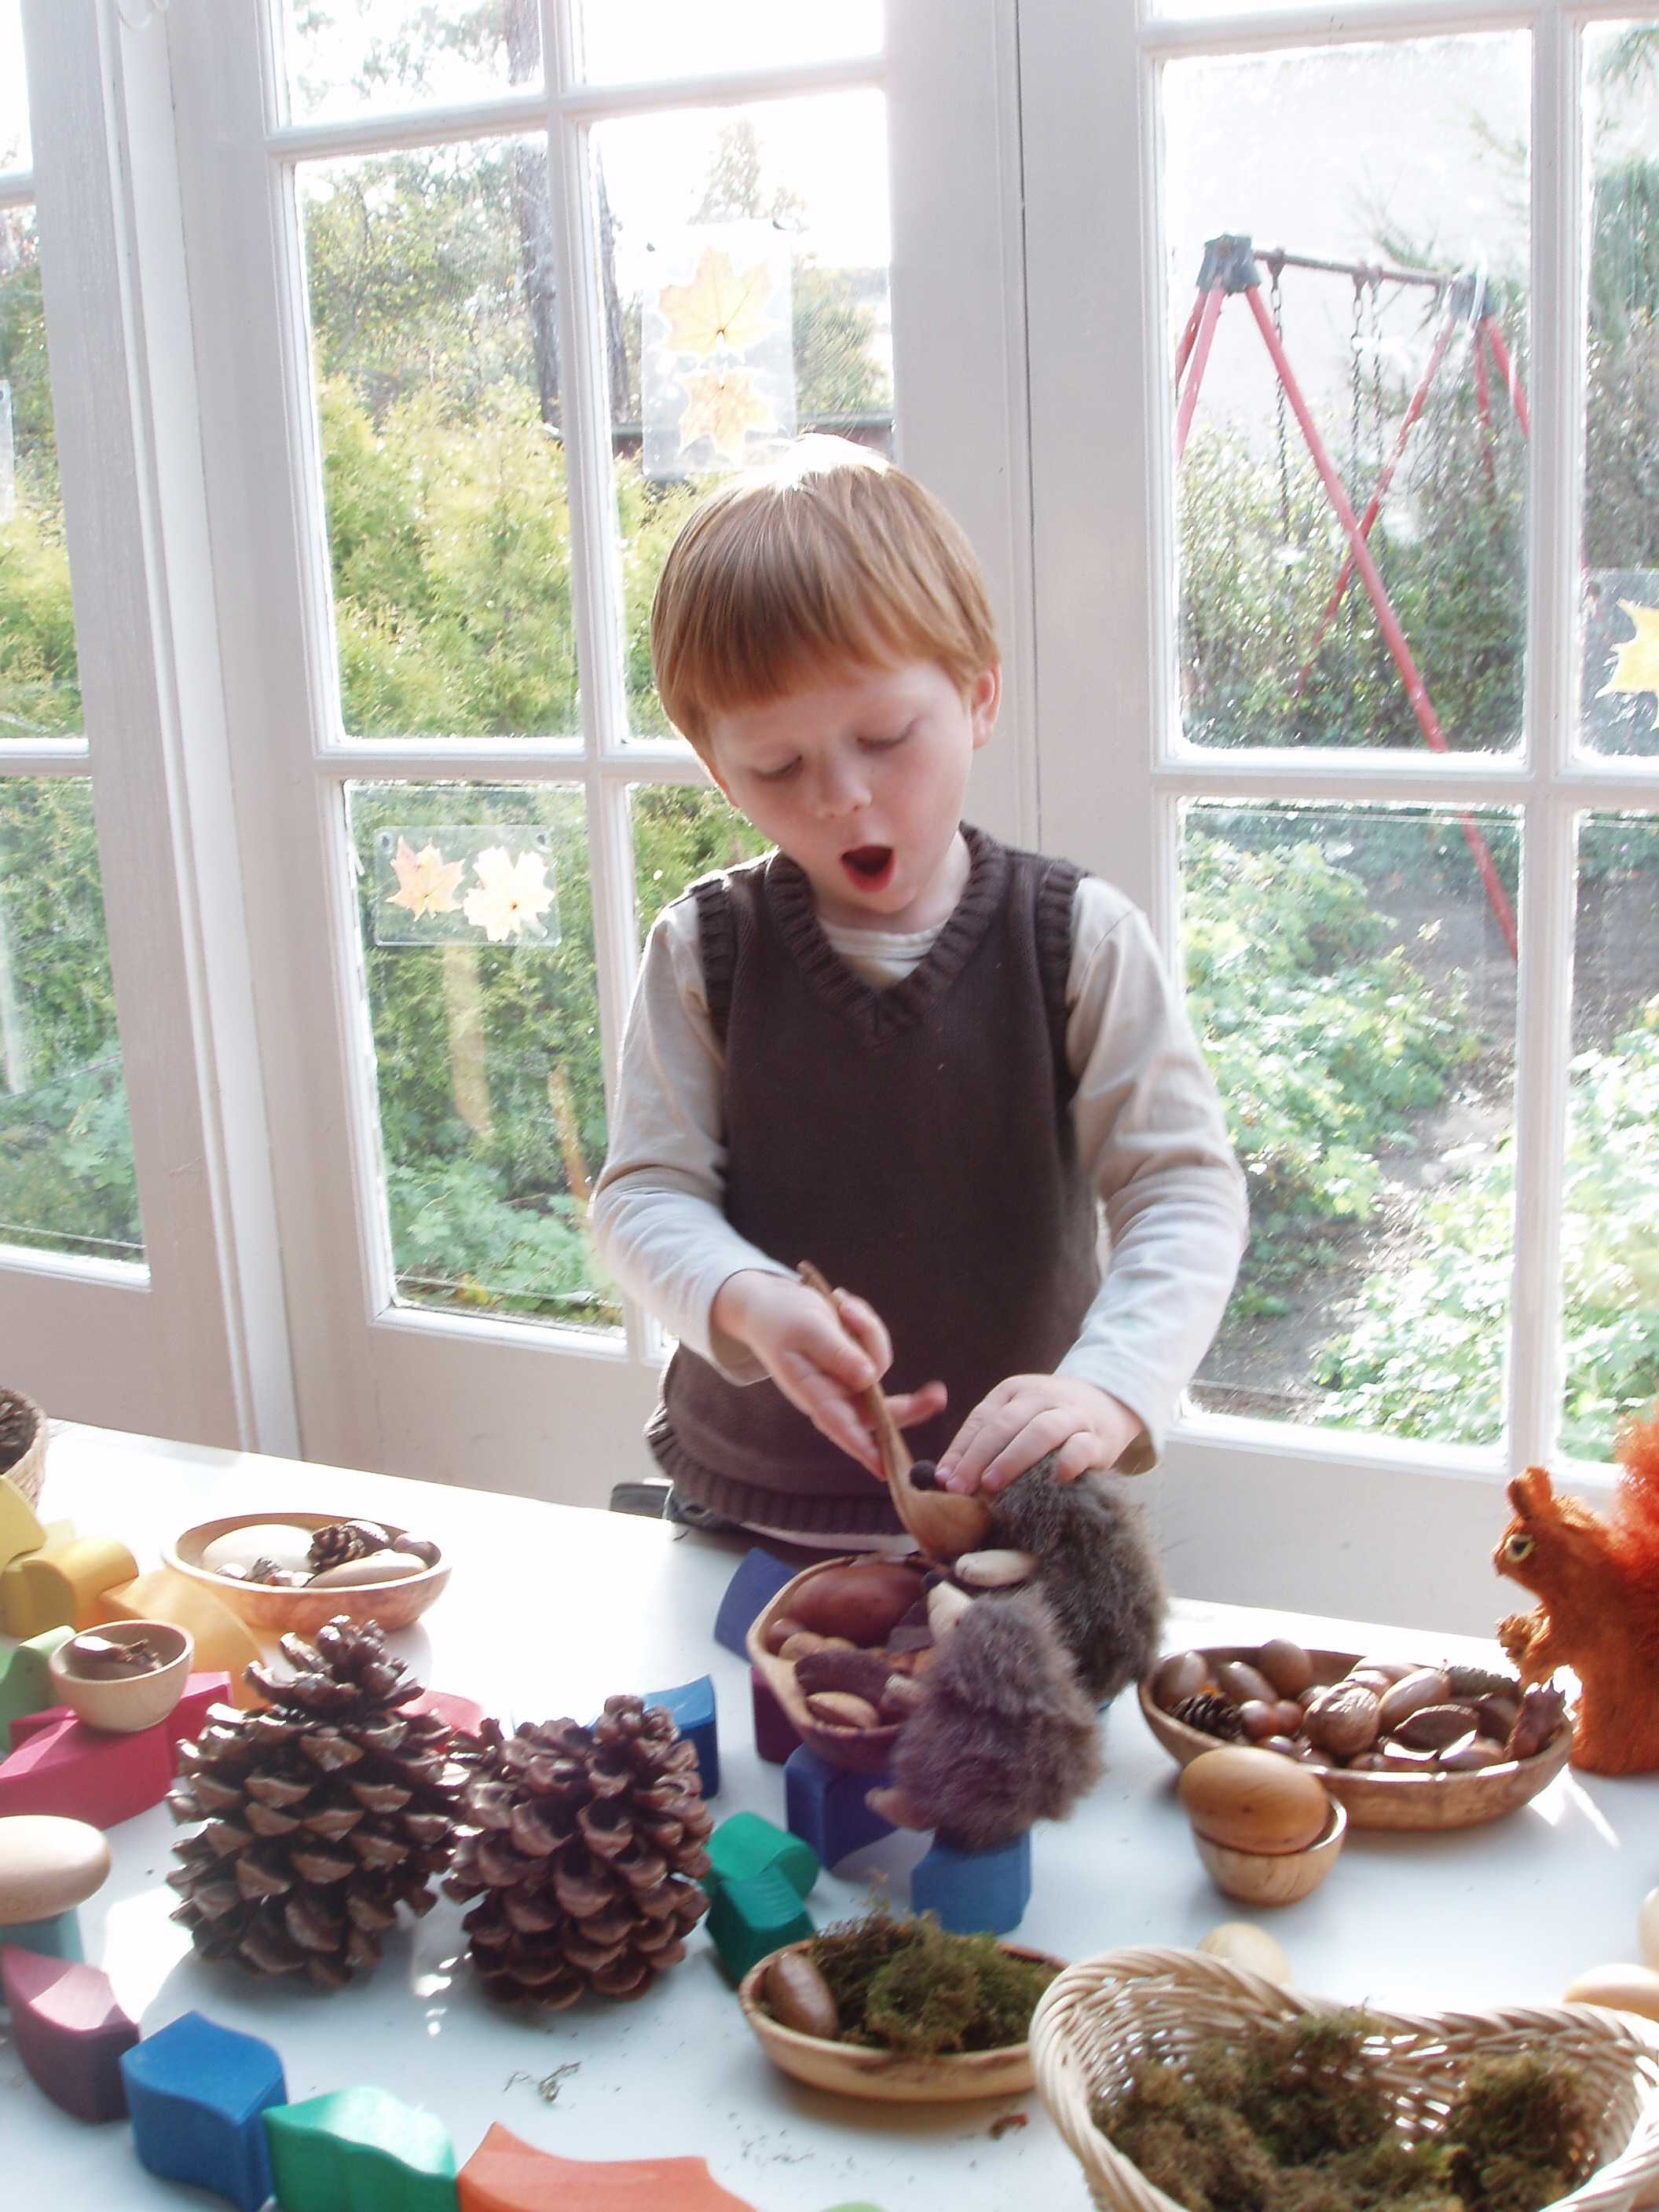 Using open ended natural 'loose parts' this boy is creating a cosy home and a meal for woodland animals.